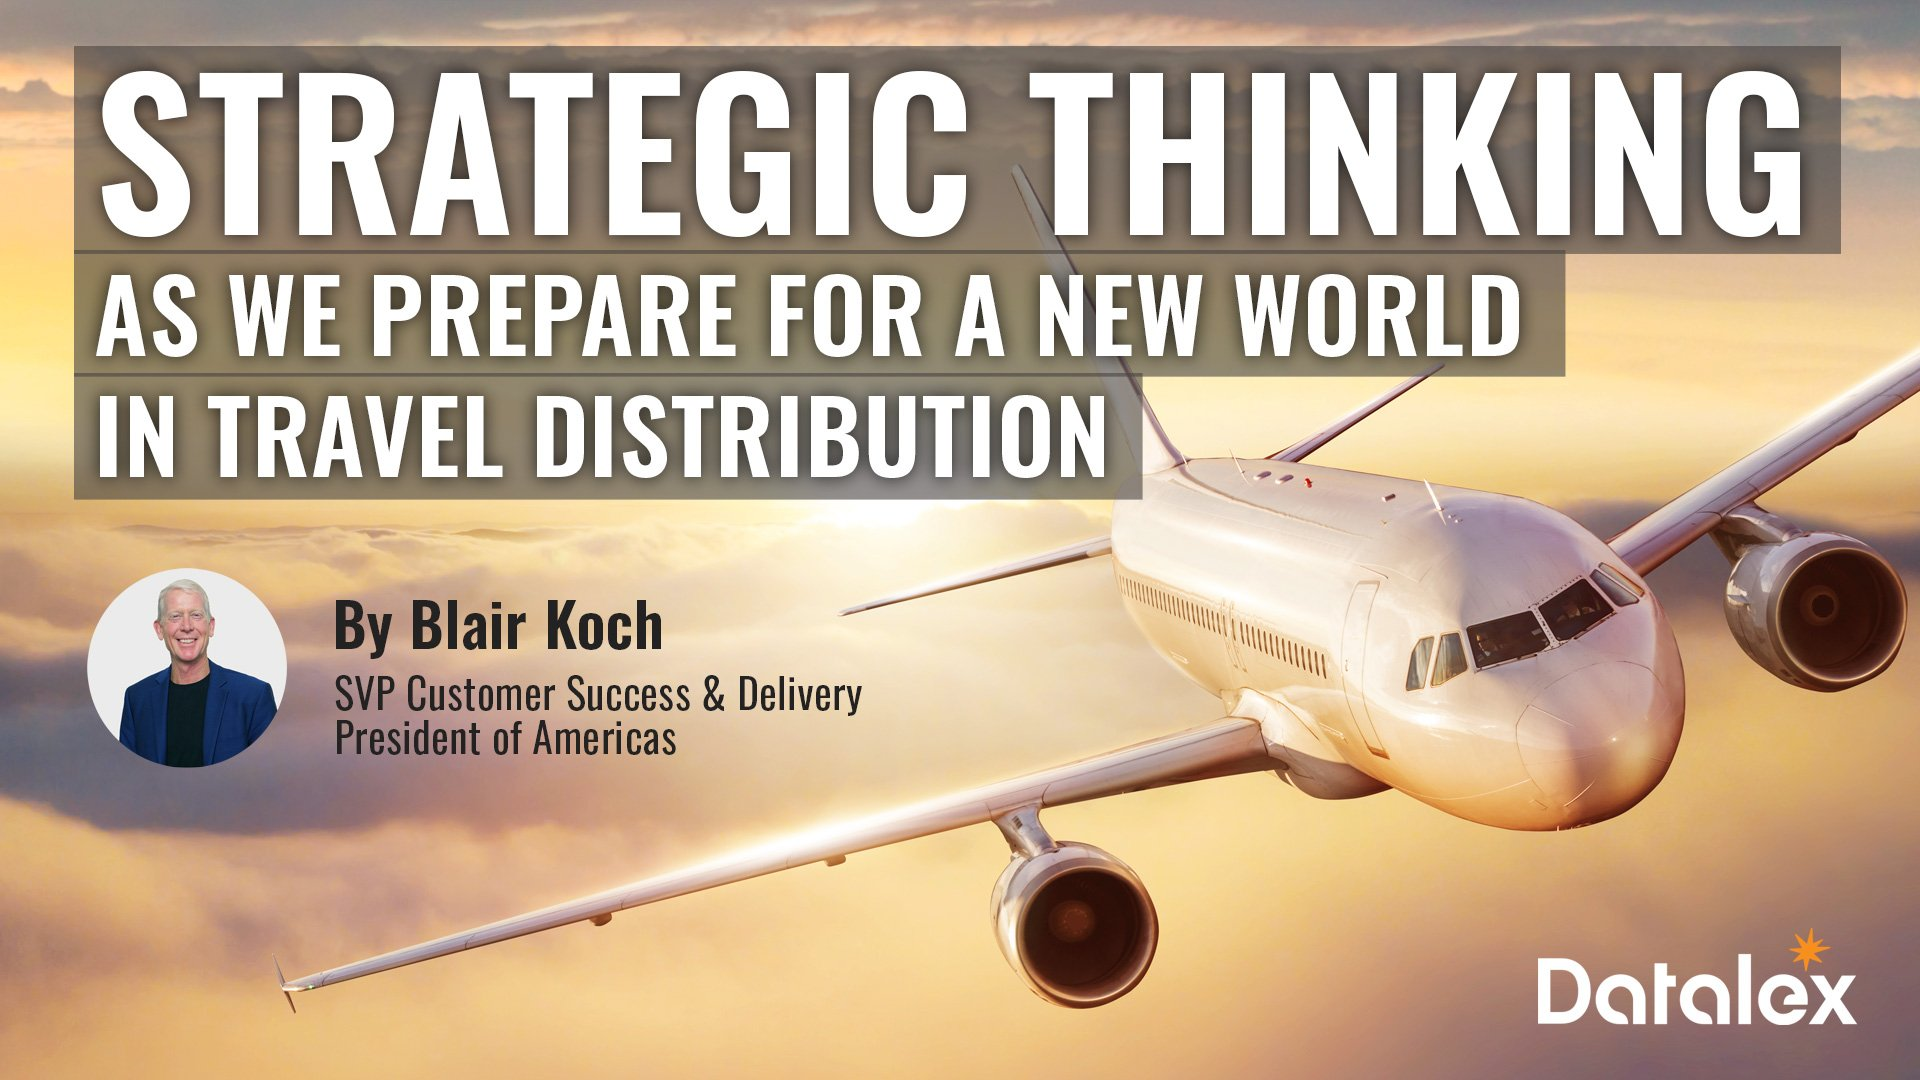 Strategic thinking on pricing as we prepare for a new world in travel distribution